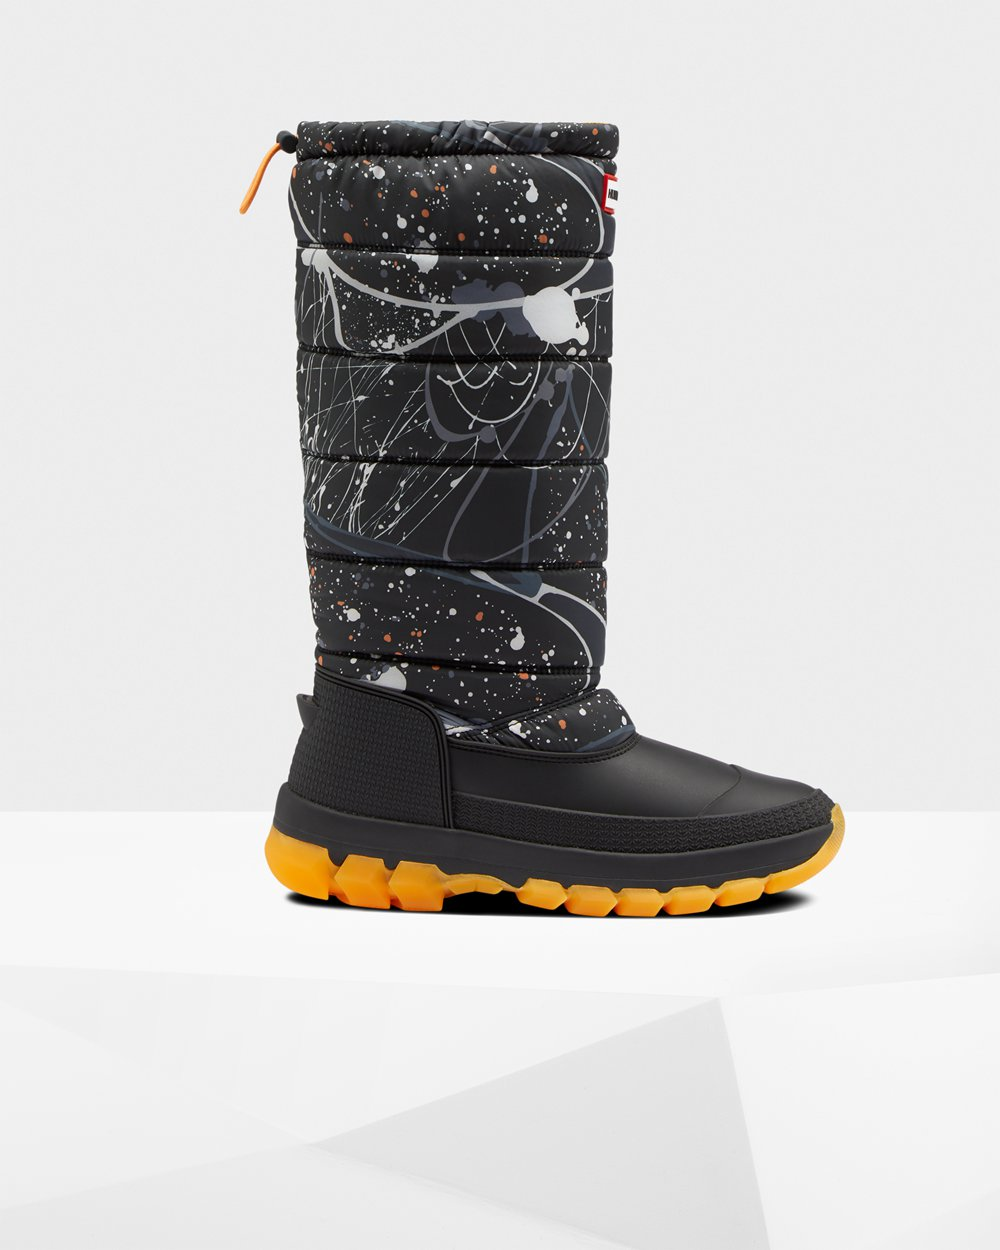 Hunter Original Printed Insulated Tall For Women - Snow Boots Grey Black Australia (OQC-435016)